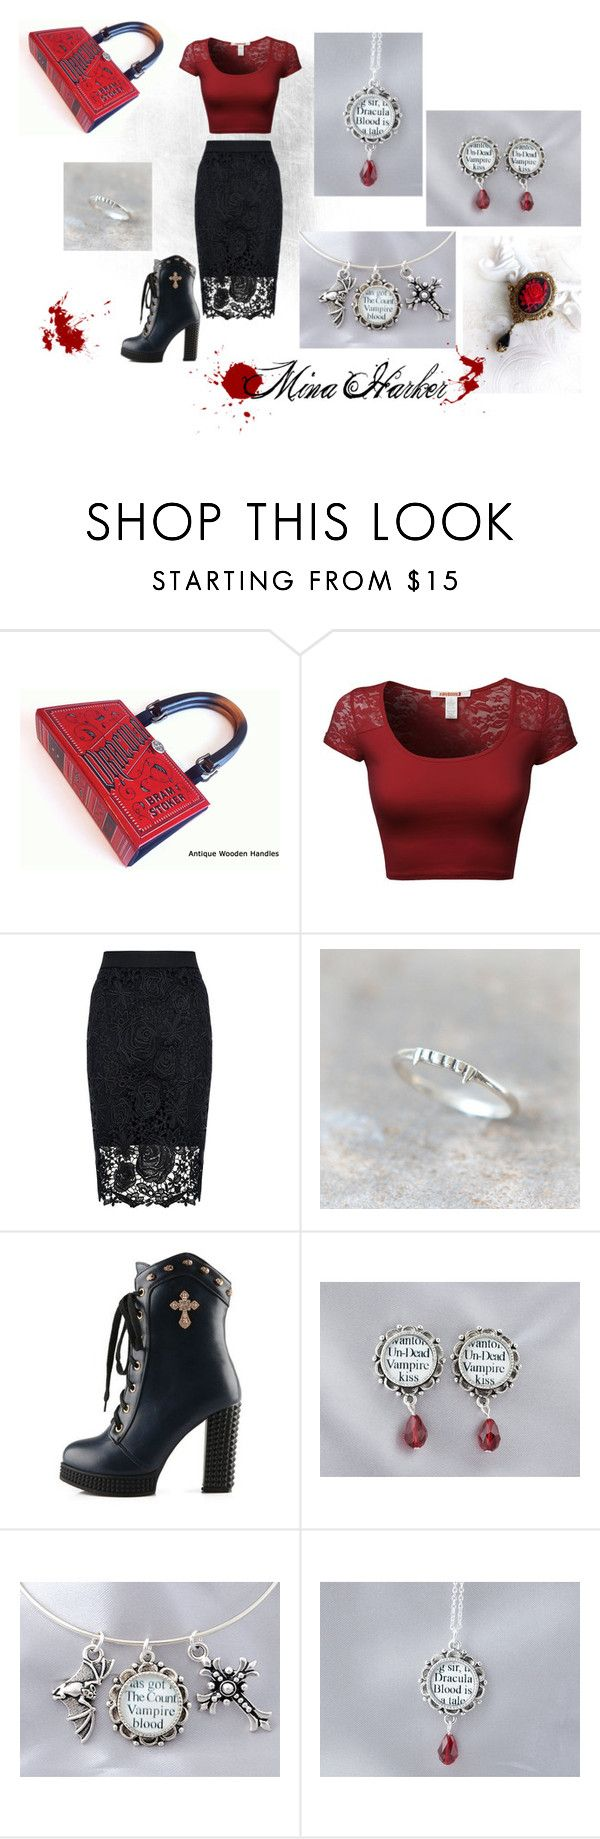 """""""Mina Harker"""" Gothic #Style inspired by the classic #Vampire novel, #Dracula by #BramStoker. Perfect for #Halloween, #Goths, and well-read #Vampires. Set created by kerry-gauthier on Polyvore featuring Quiz"""